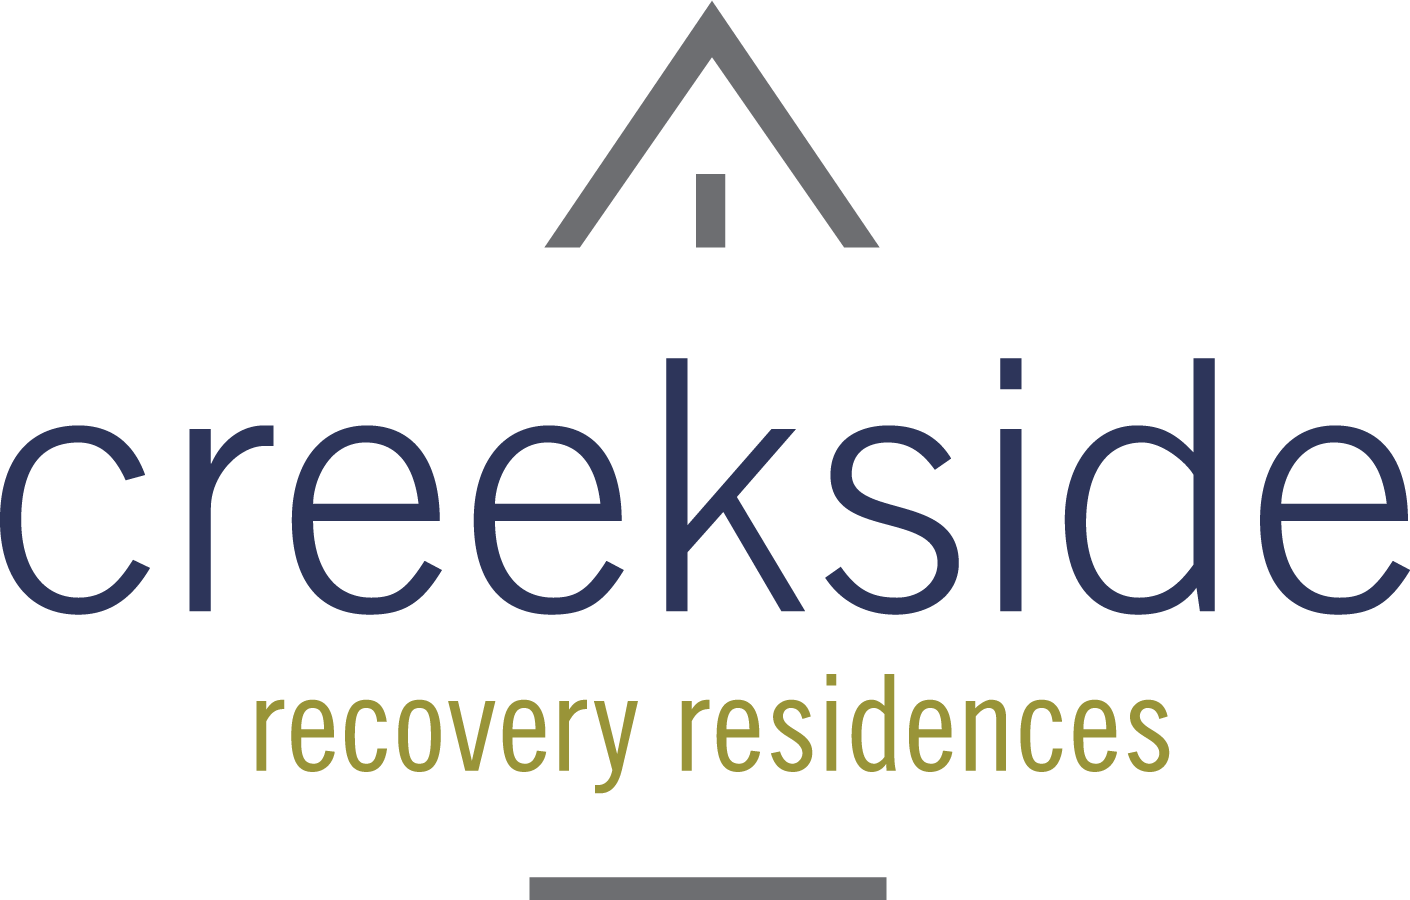 Creekside Recovery Residences